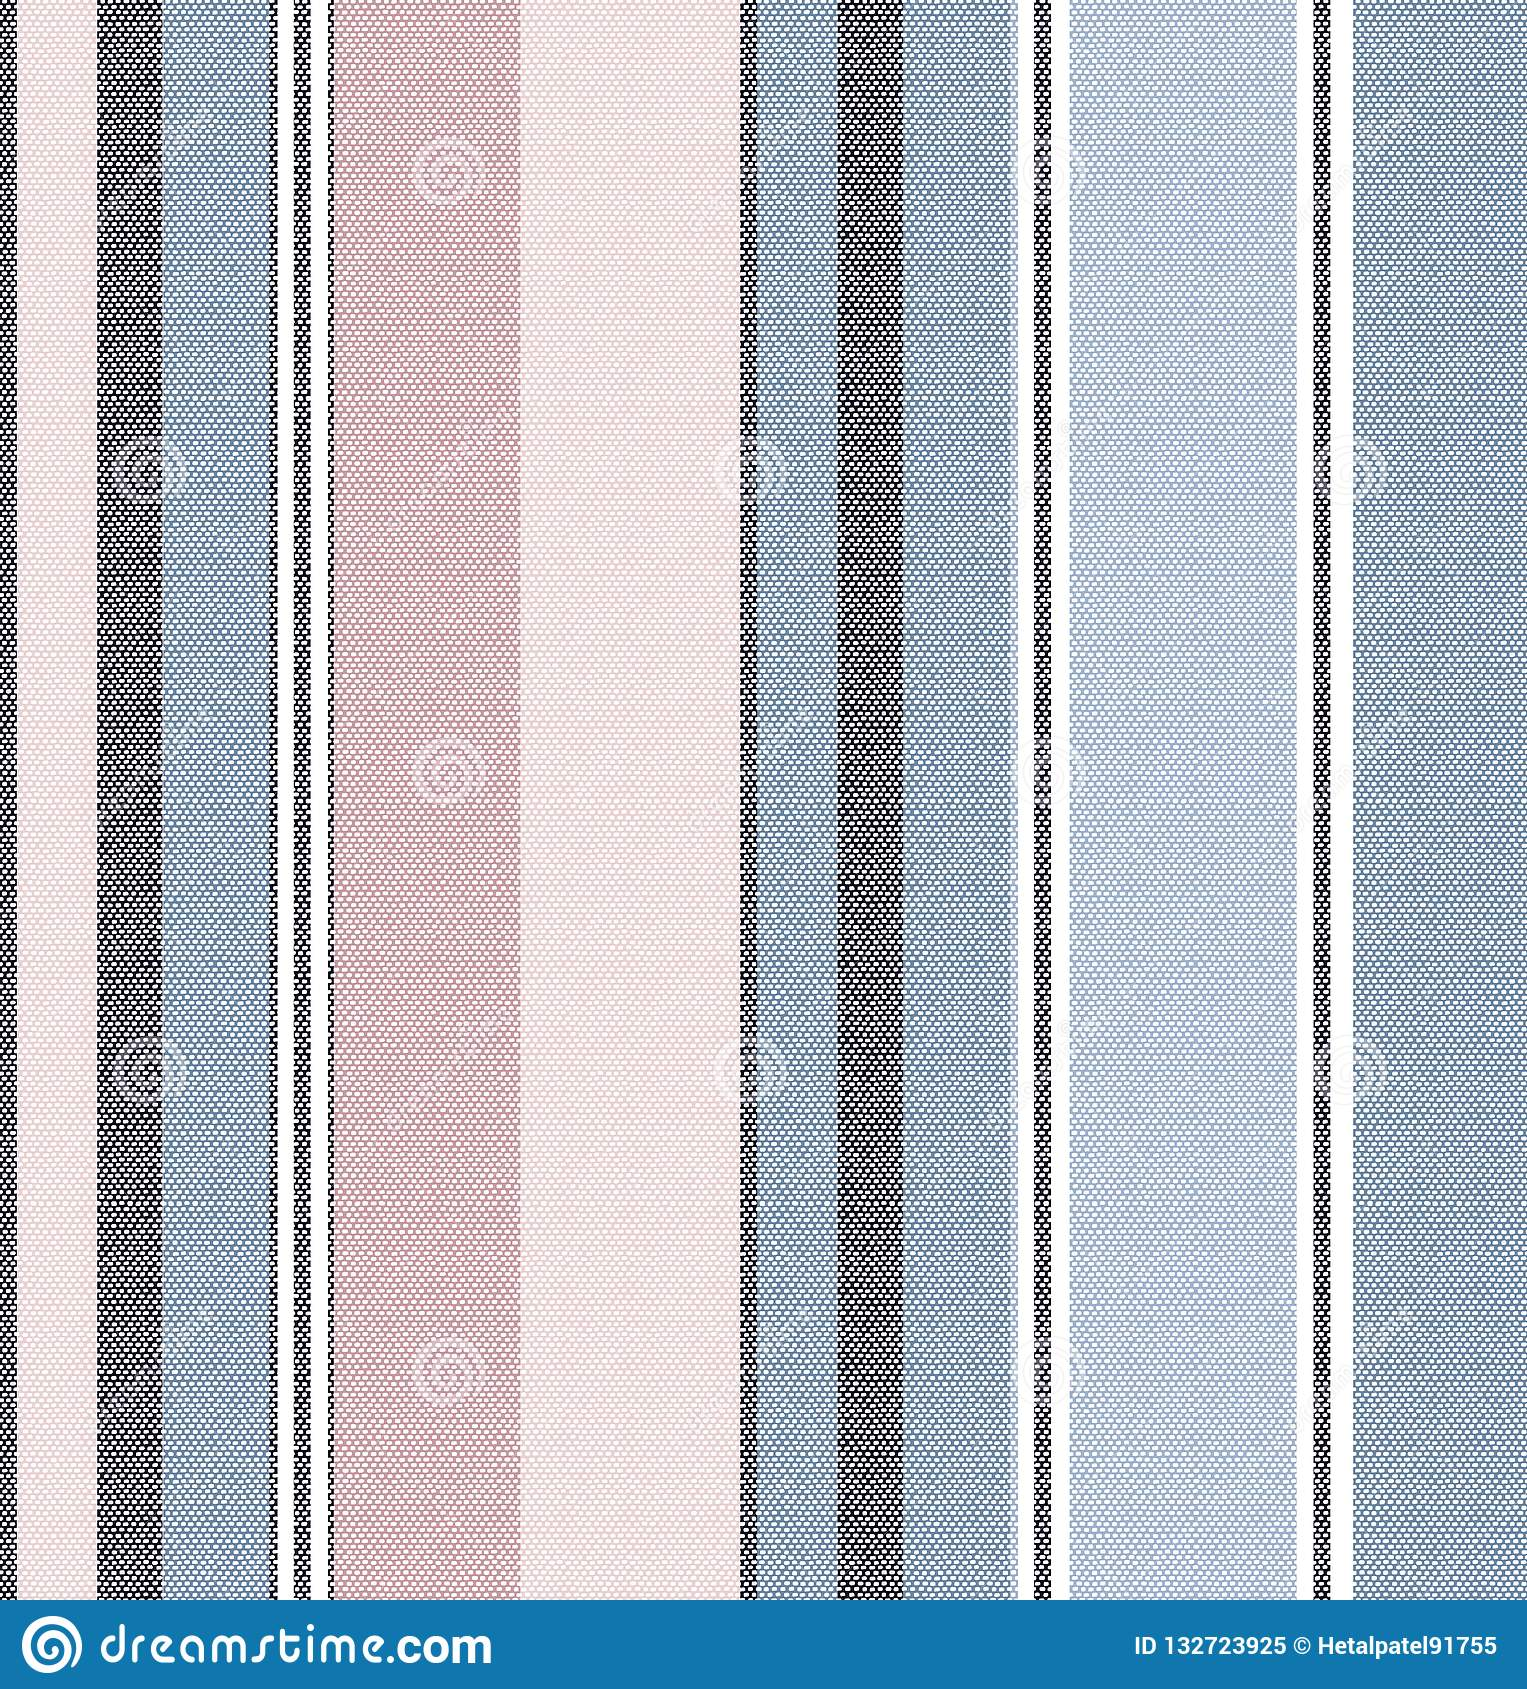 Stripes pattern on fabric texture